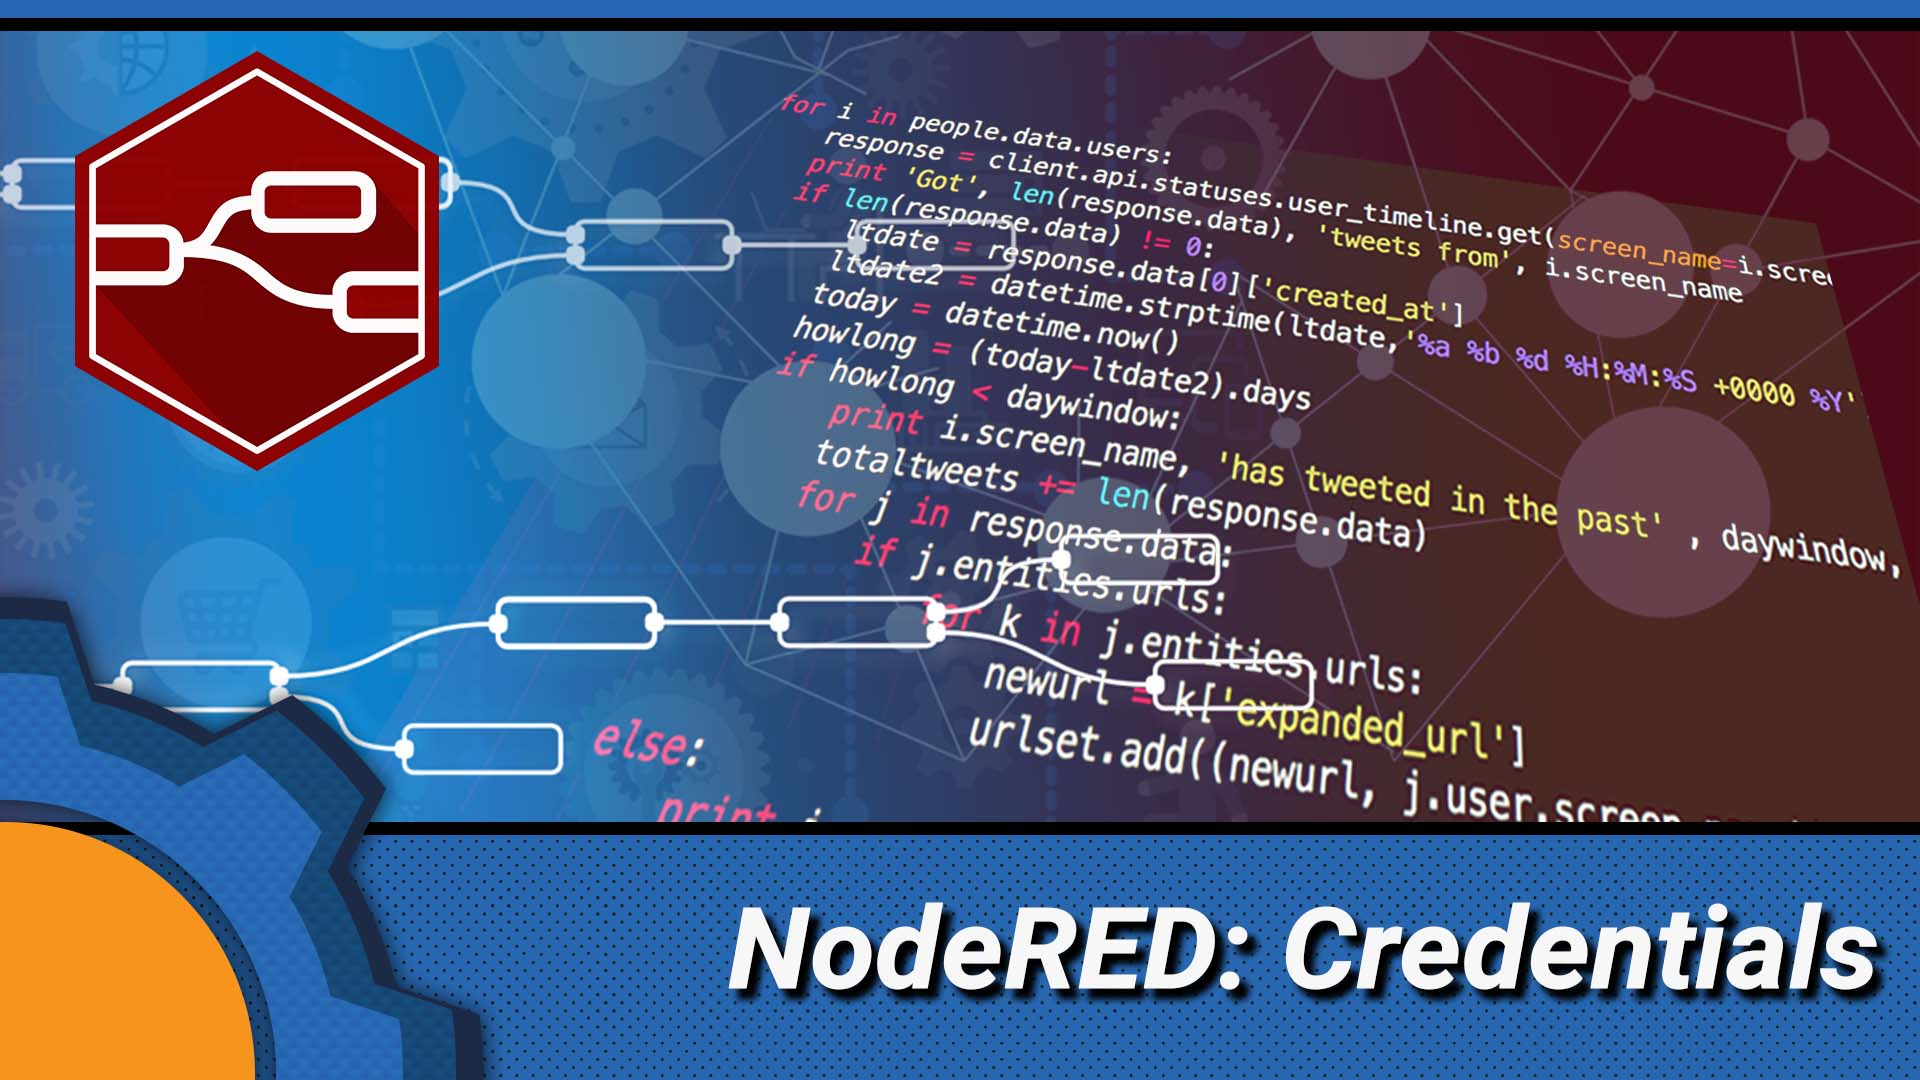 Serving credentials with NodeRED - Not Enough TECH